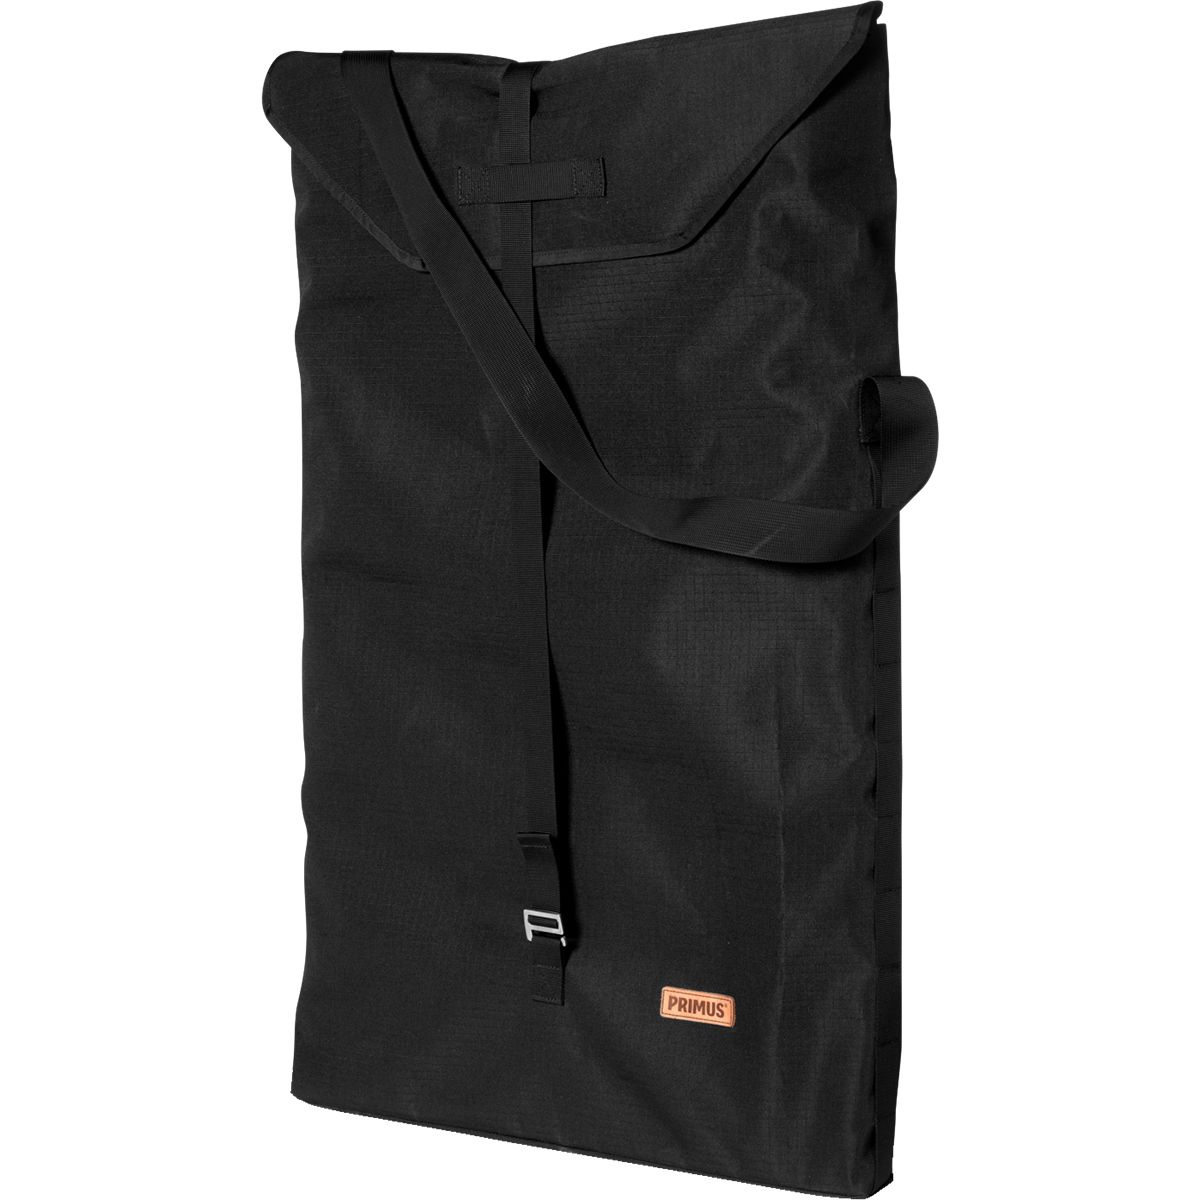 Image of Primus OpenFire Pan Pack Sack